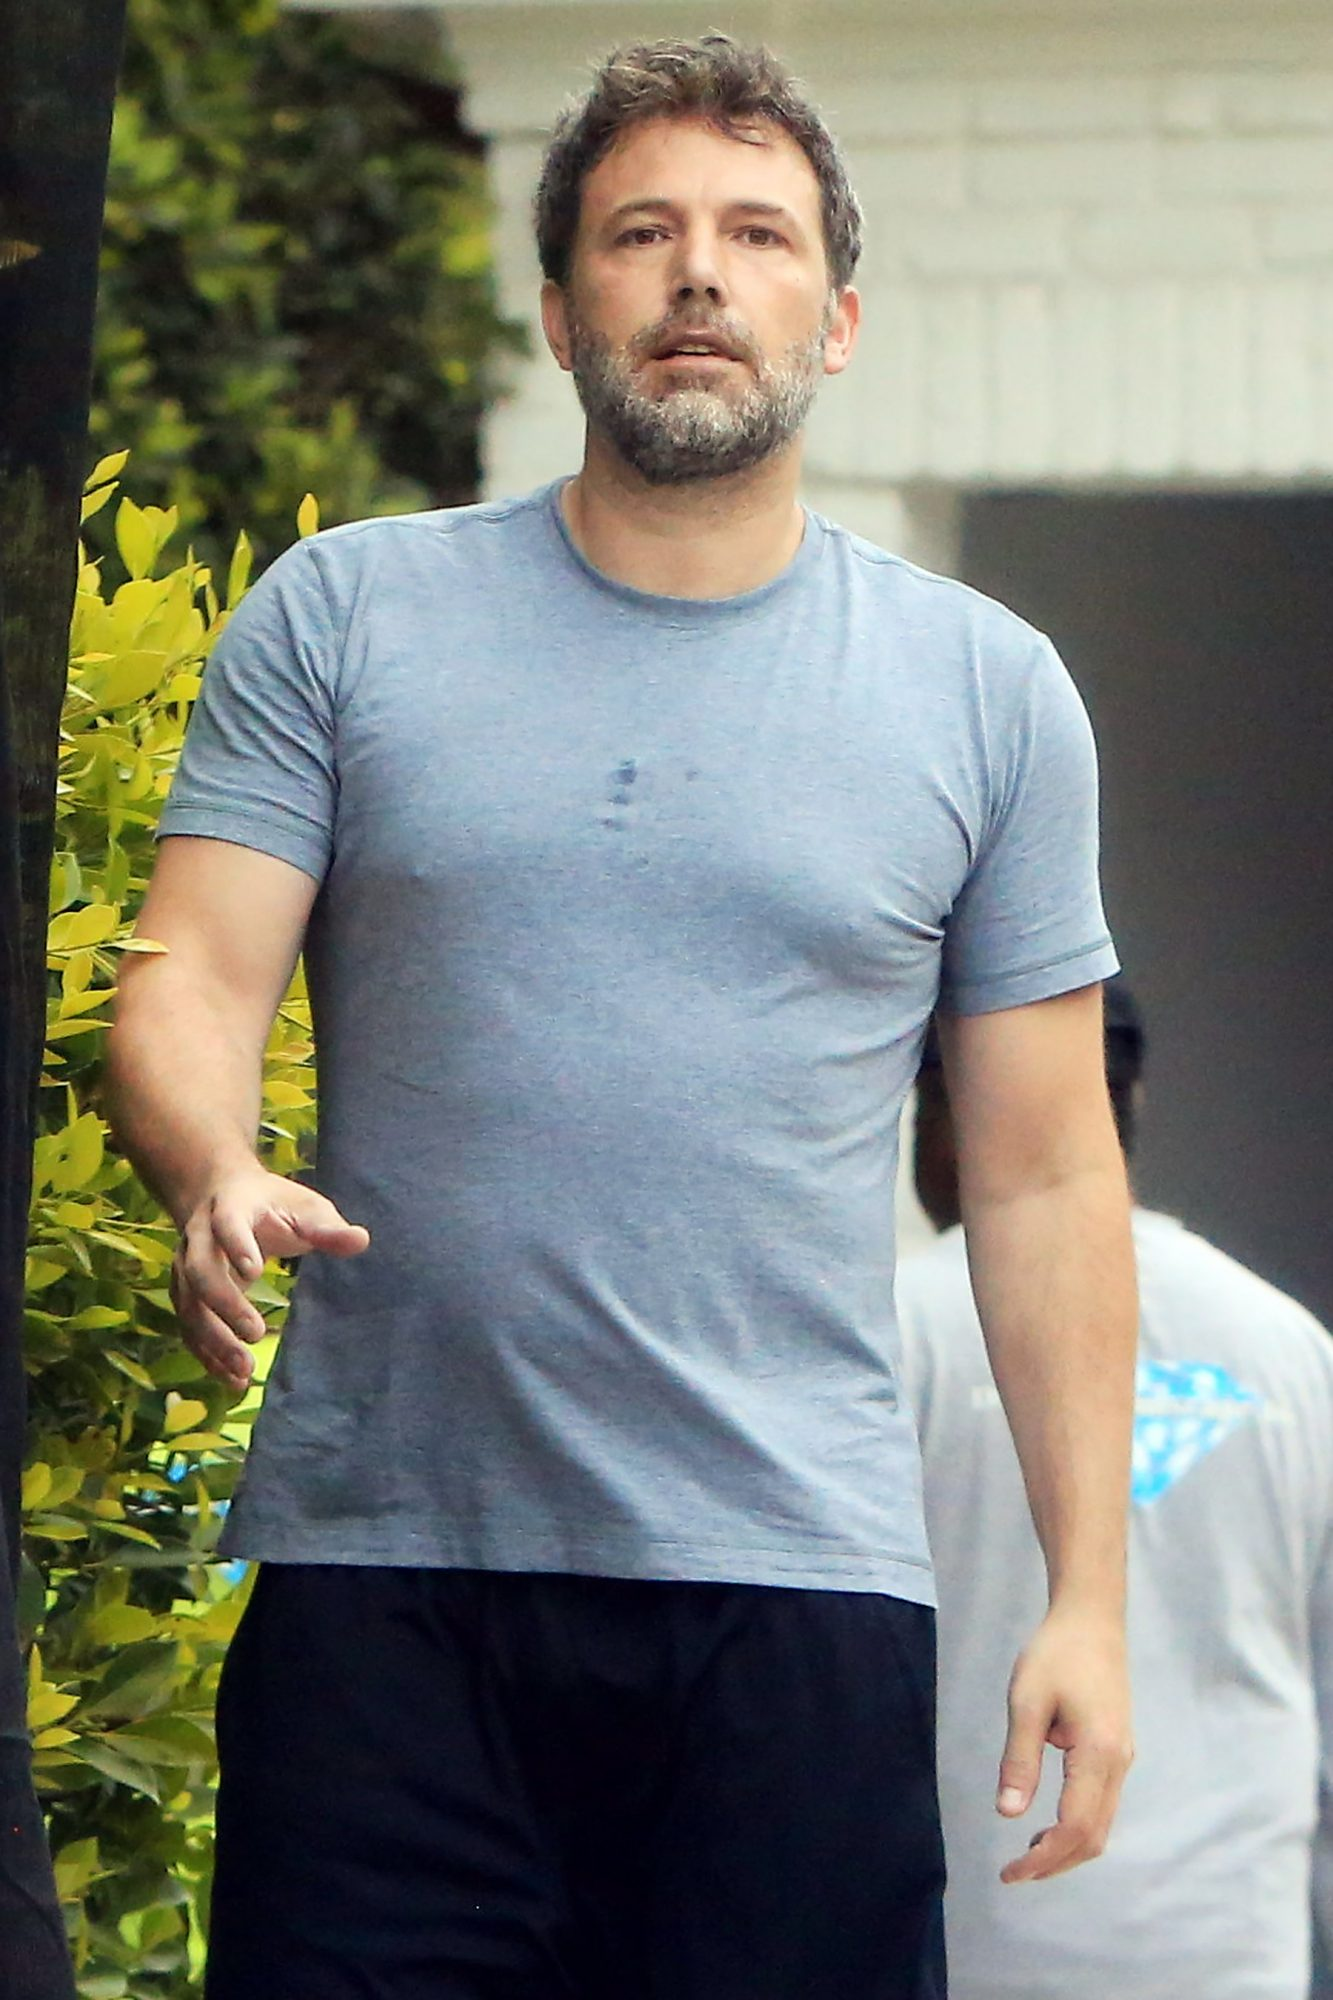 PREMIUM EXCLUSIVE FIRST PIX! Ben Affleck Leaves Rehab After 2 Weeks Of Therapy